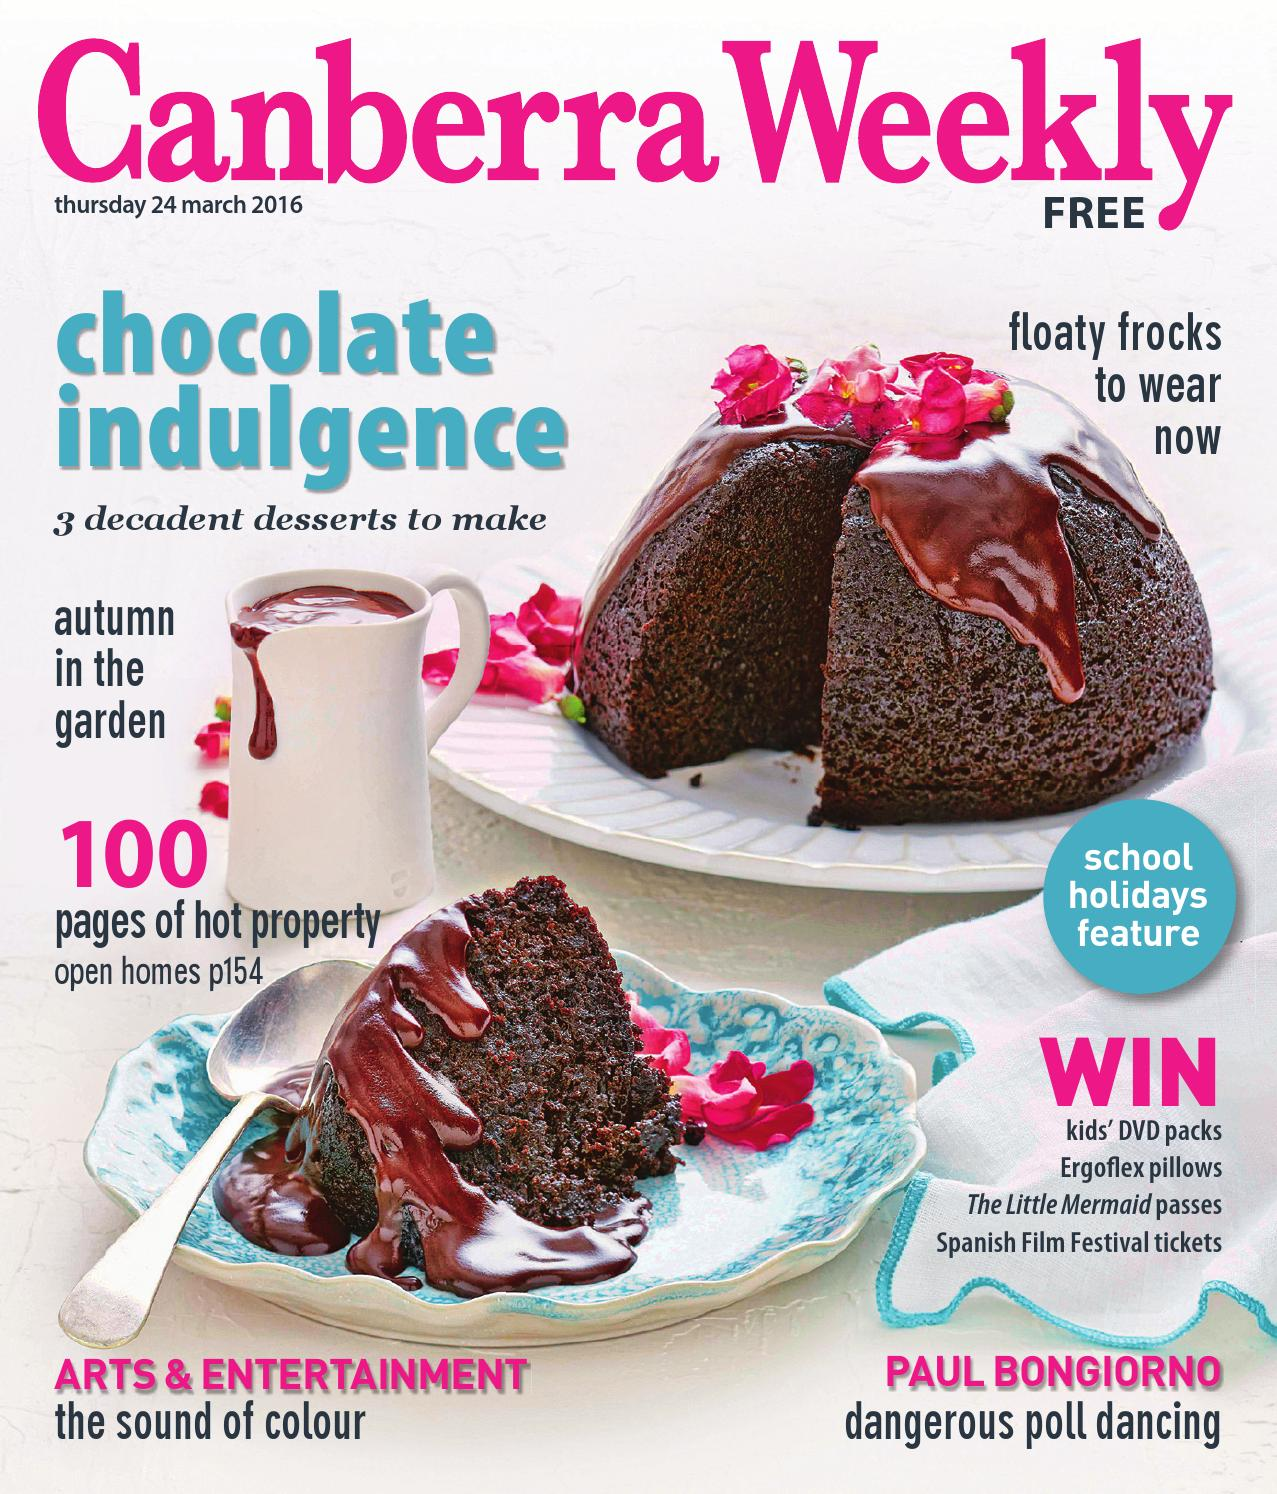 Küchen In U Form Bilder 24 March 2016 By Canberra Weekly Magazine Issuu